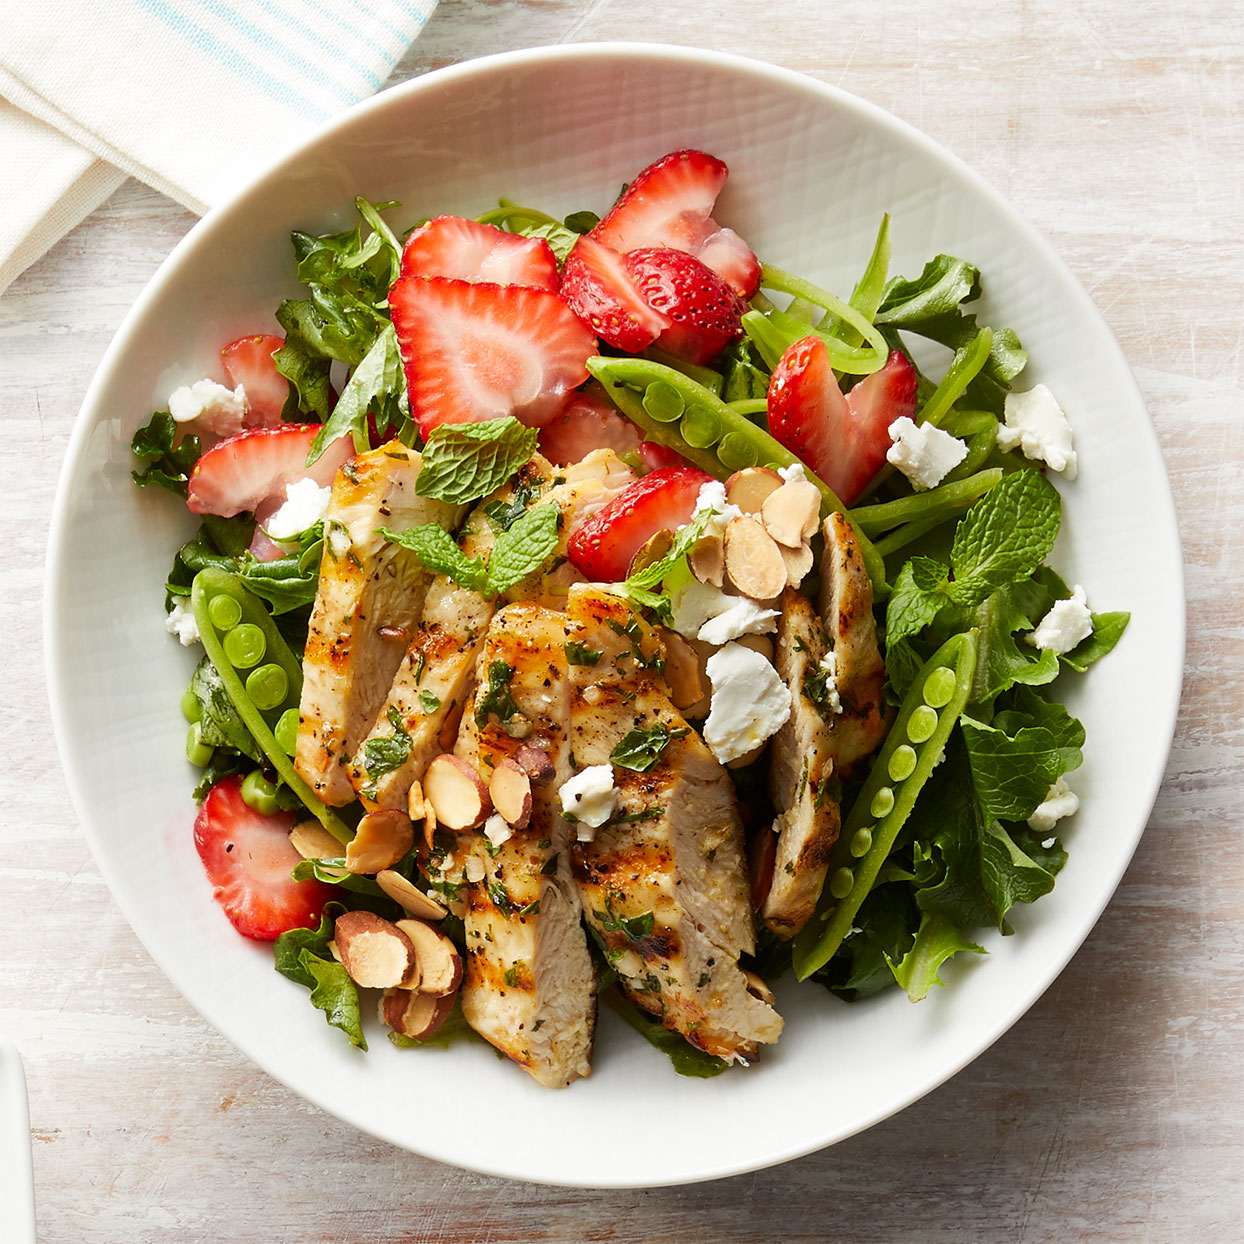 Fresh mint appears twice here: finely chopped mint in the dressing and whole mint leaves in the strawberry chicken salad, tossed with tender greens. Source: Diabetic Living Magazine, Spring 2020